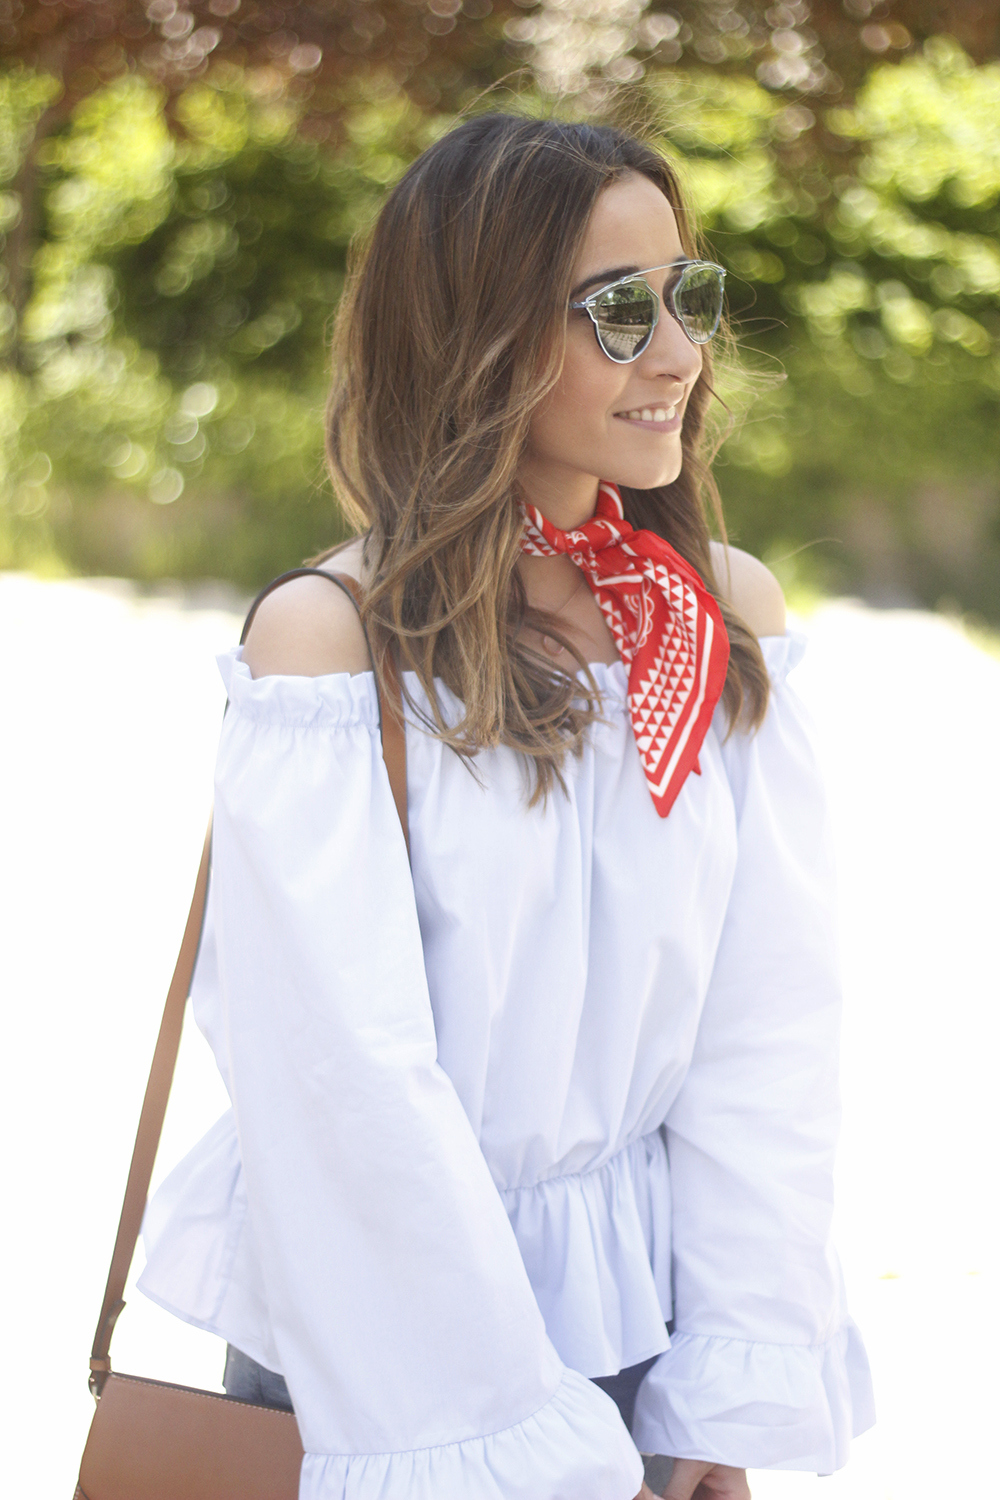 off the shoulders top with bell sleeves red bandana nude heels dior sunglasses spring outfit15